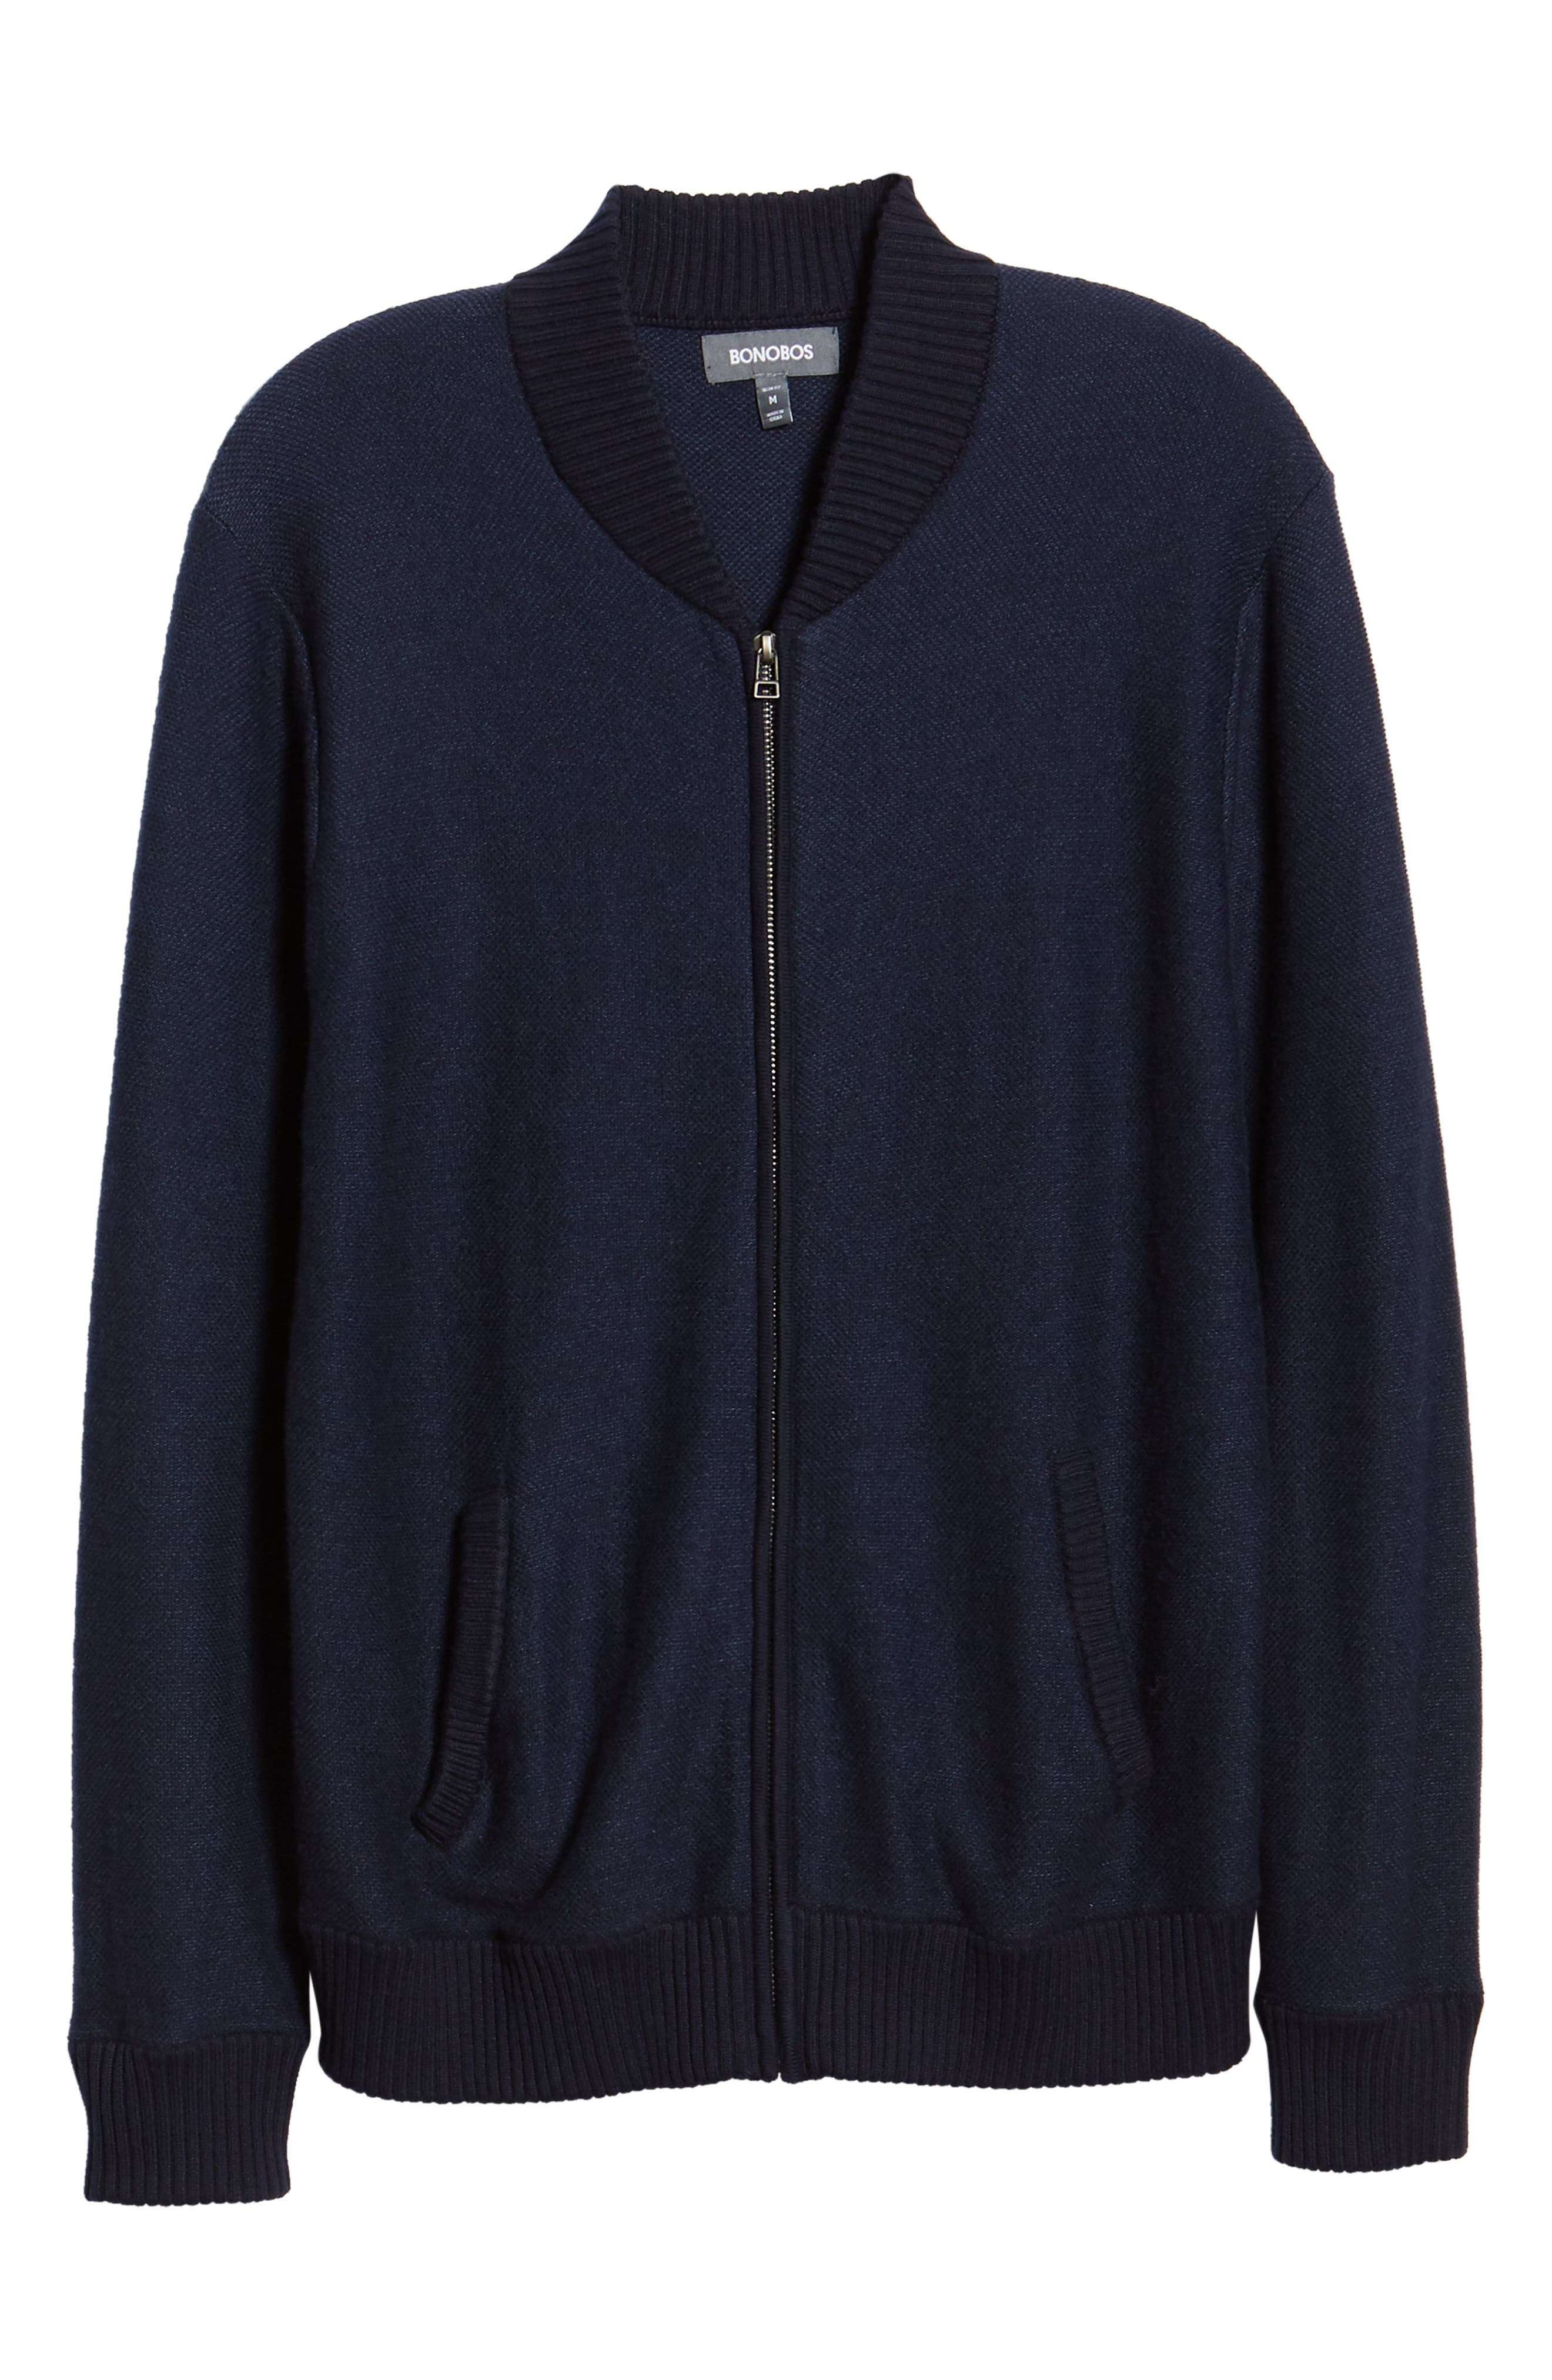 Cotton & Cashmere Bomber Sweater,                             Alternate thumbnail 6, color,                             MIDNIGHT BLUE